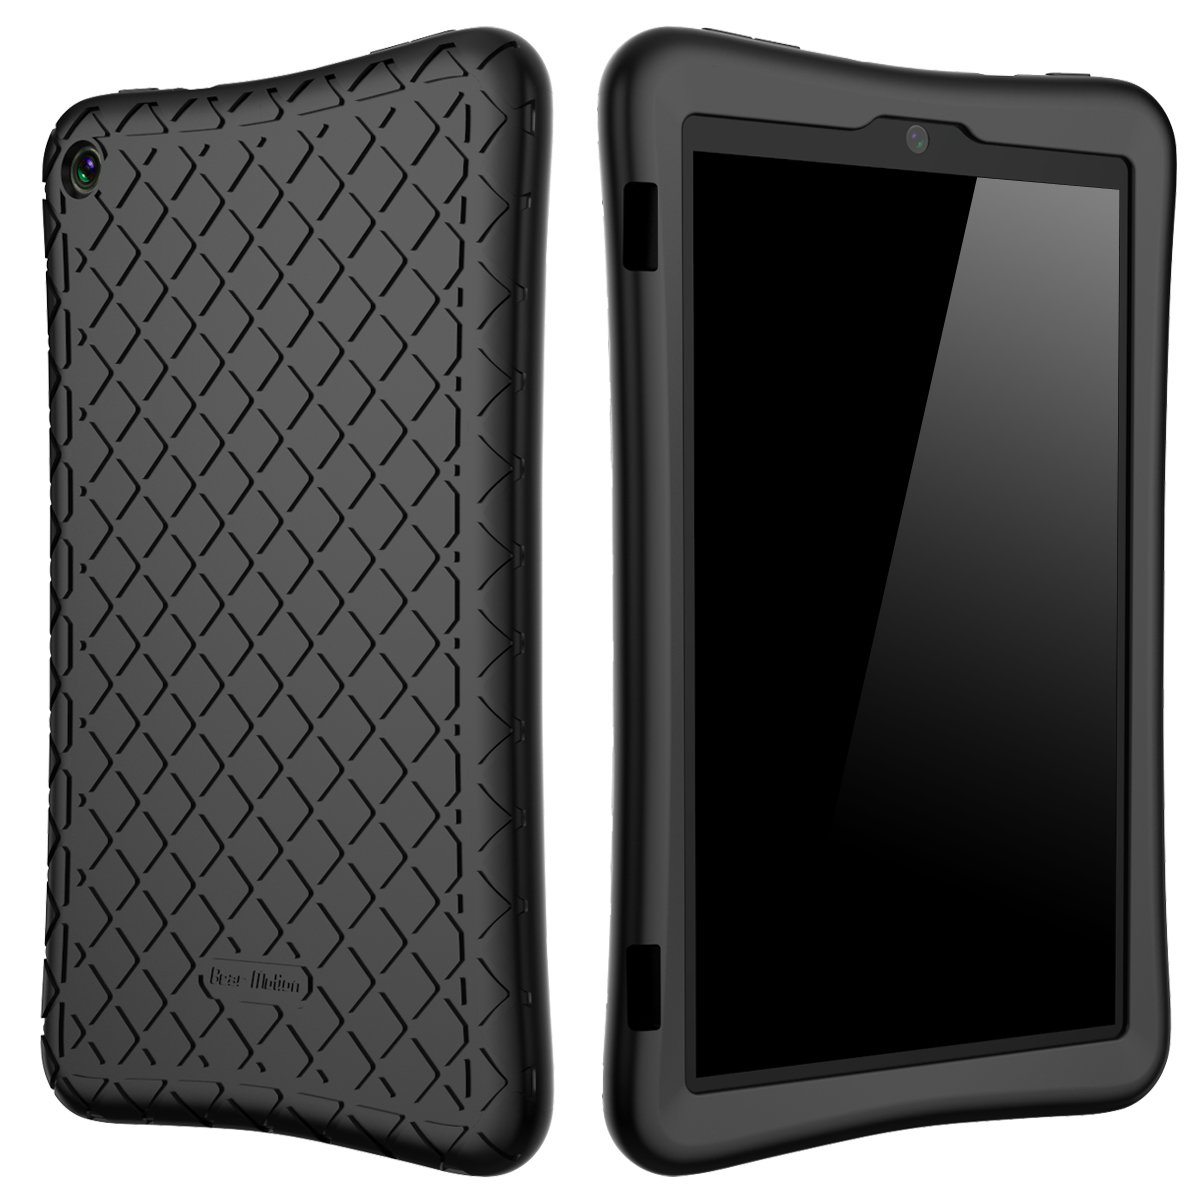 Bear Motion Silicone Case for Fire HD 8 2017/2018 - Anti Slip Shockproof Light Weight Kids Friendly Protective Case for All-New Fire HD 8 Tablet with Alexa (7th / 8th Gen 2017/2018 Model) (Black)